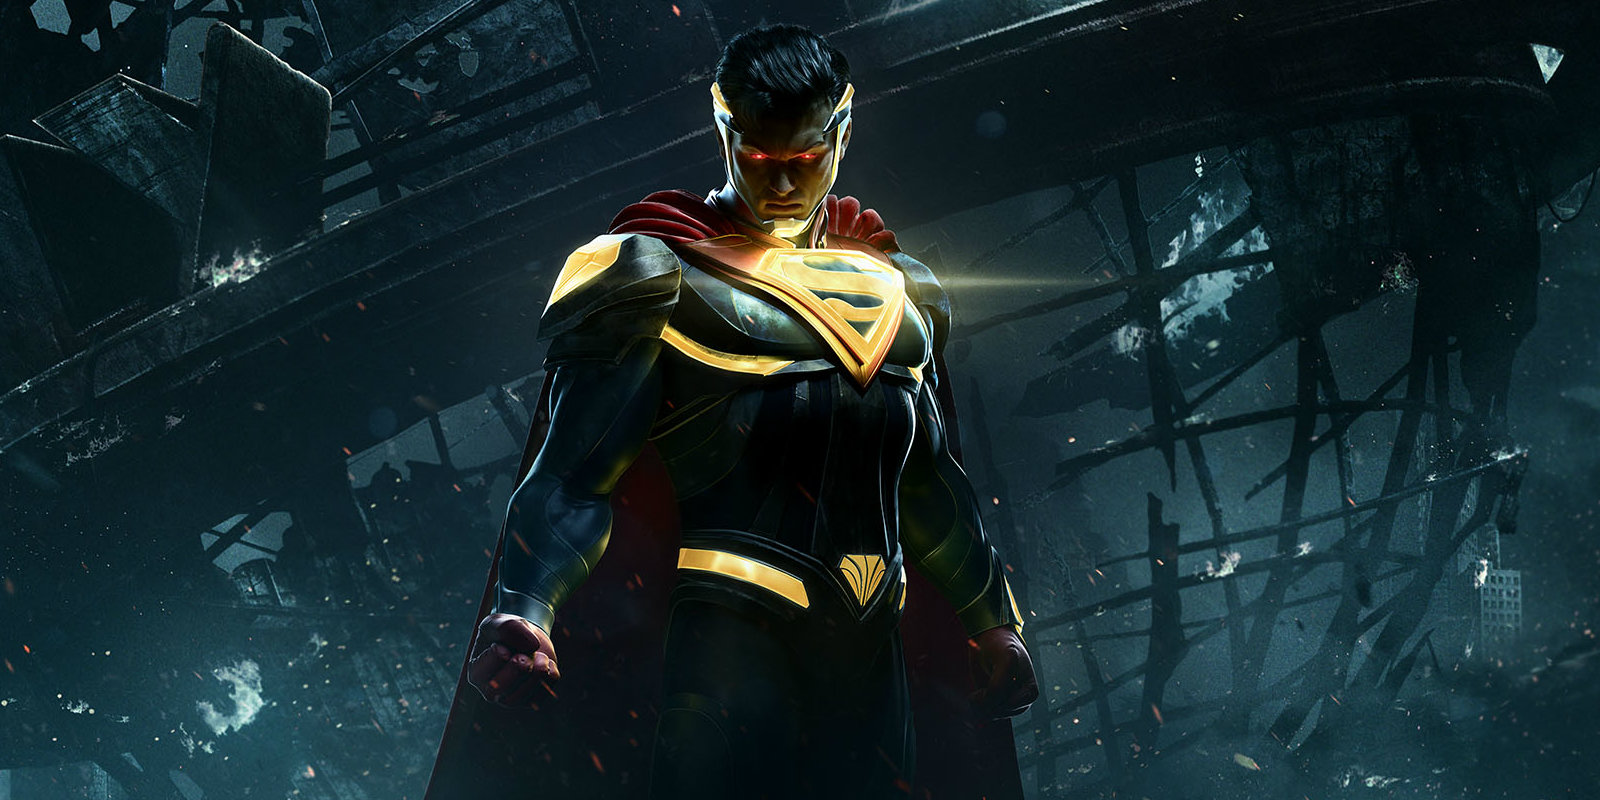 Injustice 2 Superman Hd Games 4k Wallpapers Images: Injustice 2 Story Trailer: DC Gods Become Tyrants